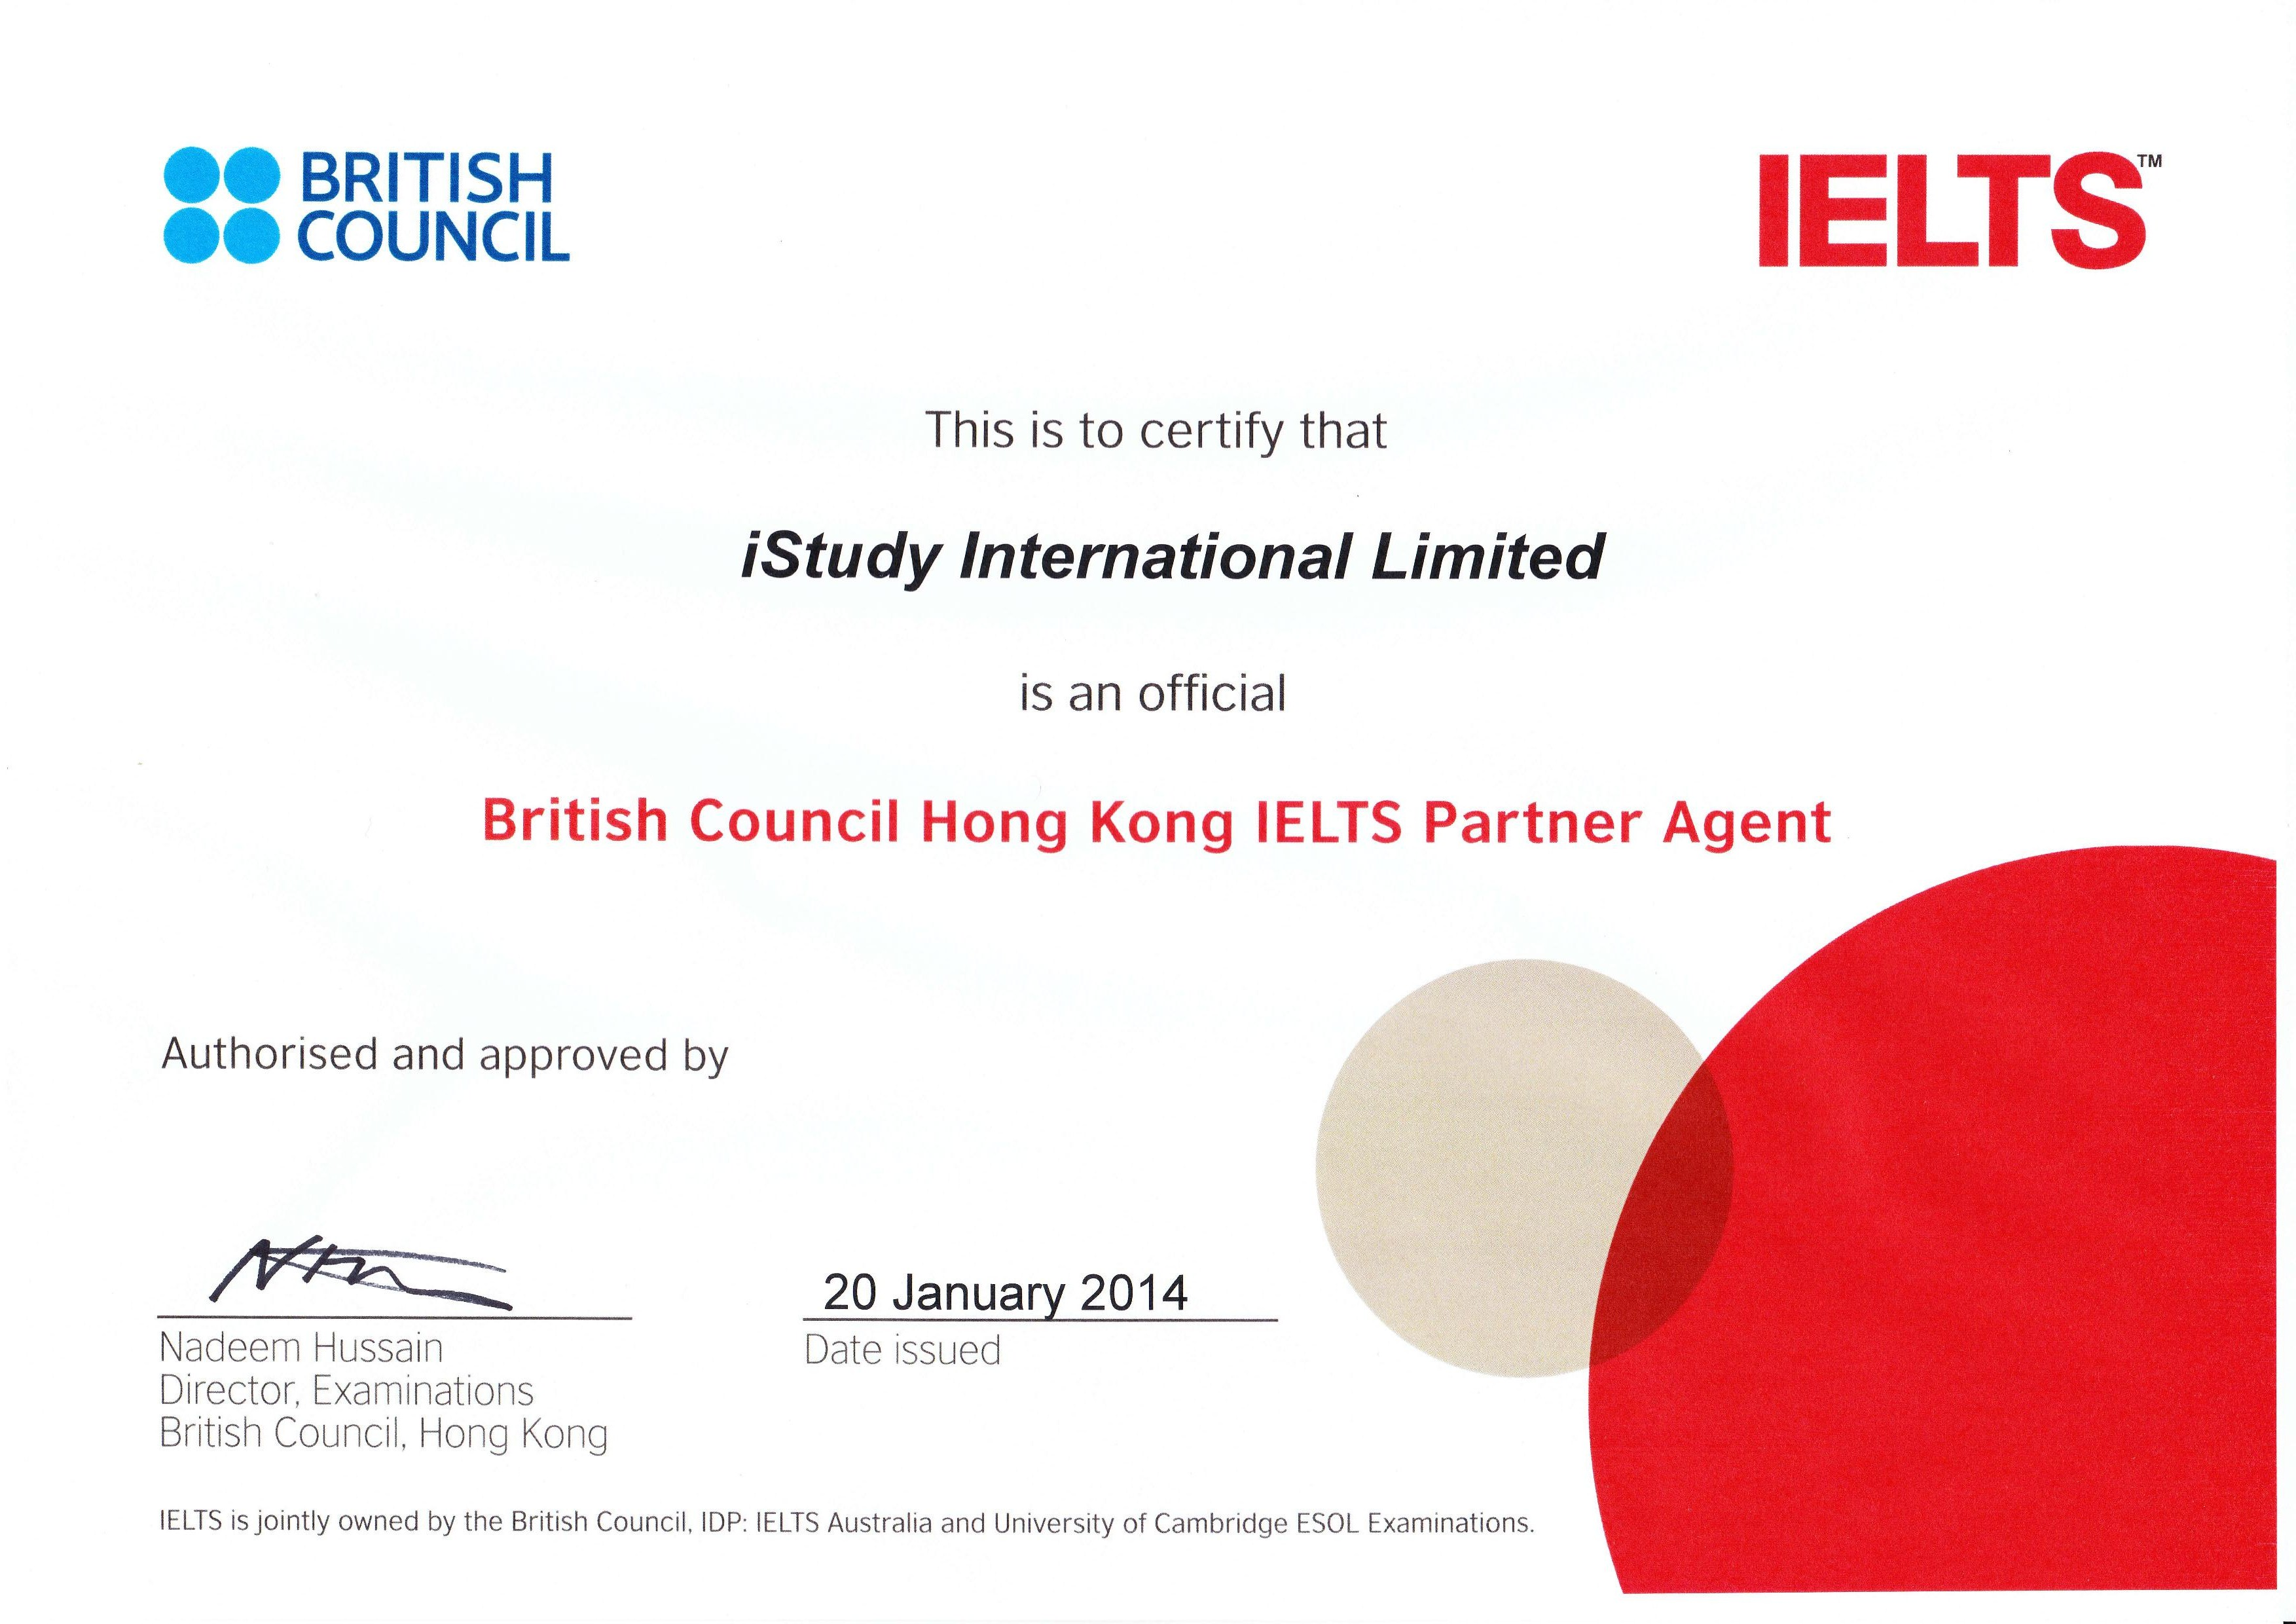 ielts fees in india 2014 idp Ielts idp fees in india 2015 ielts idp fees in india 2014 idp ielts fees refund idp ielts fees singapore ielts idp cost ielts idp revaluation fees.